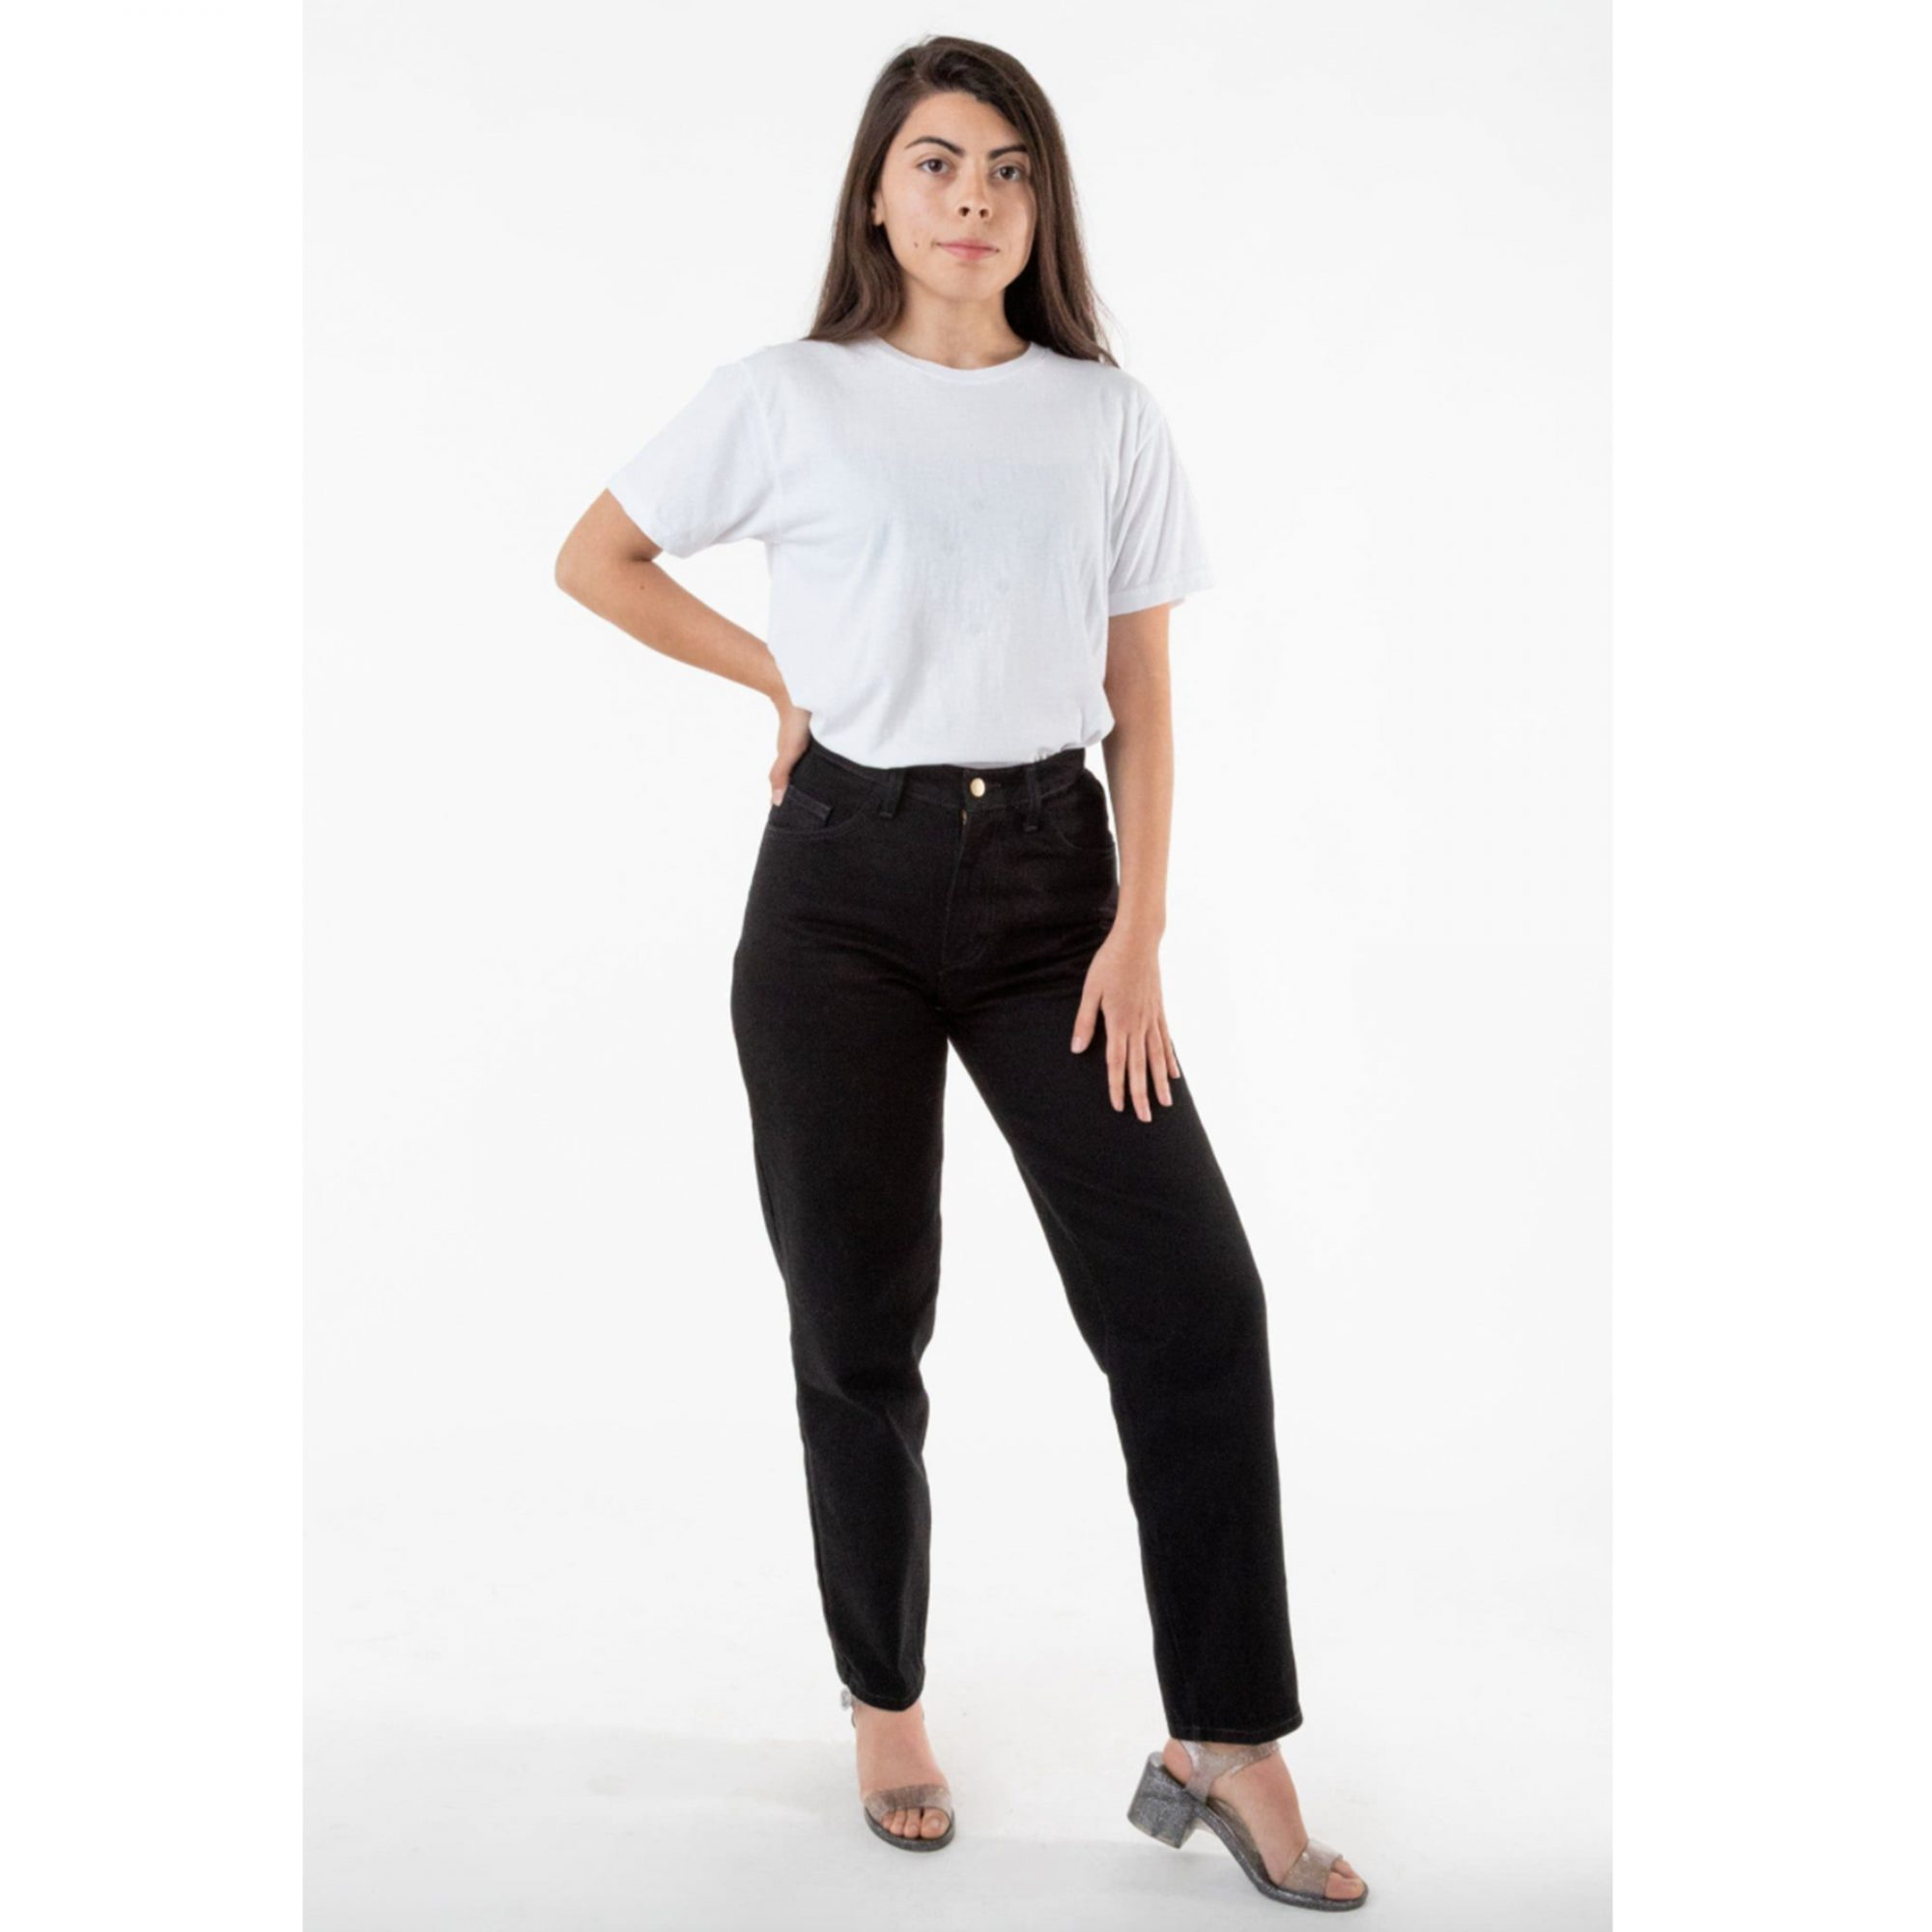 los-angeles-apparel-relaxed-fit-jeans, best-jeans-for-women